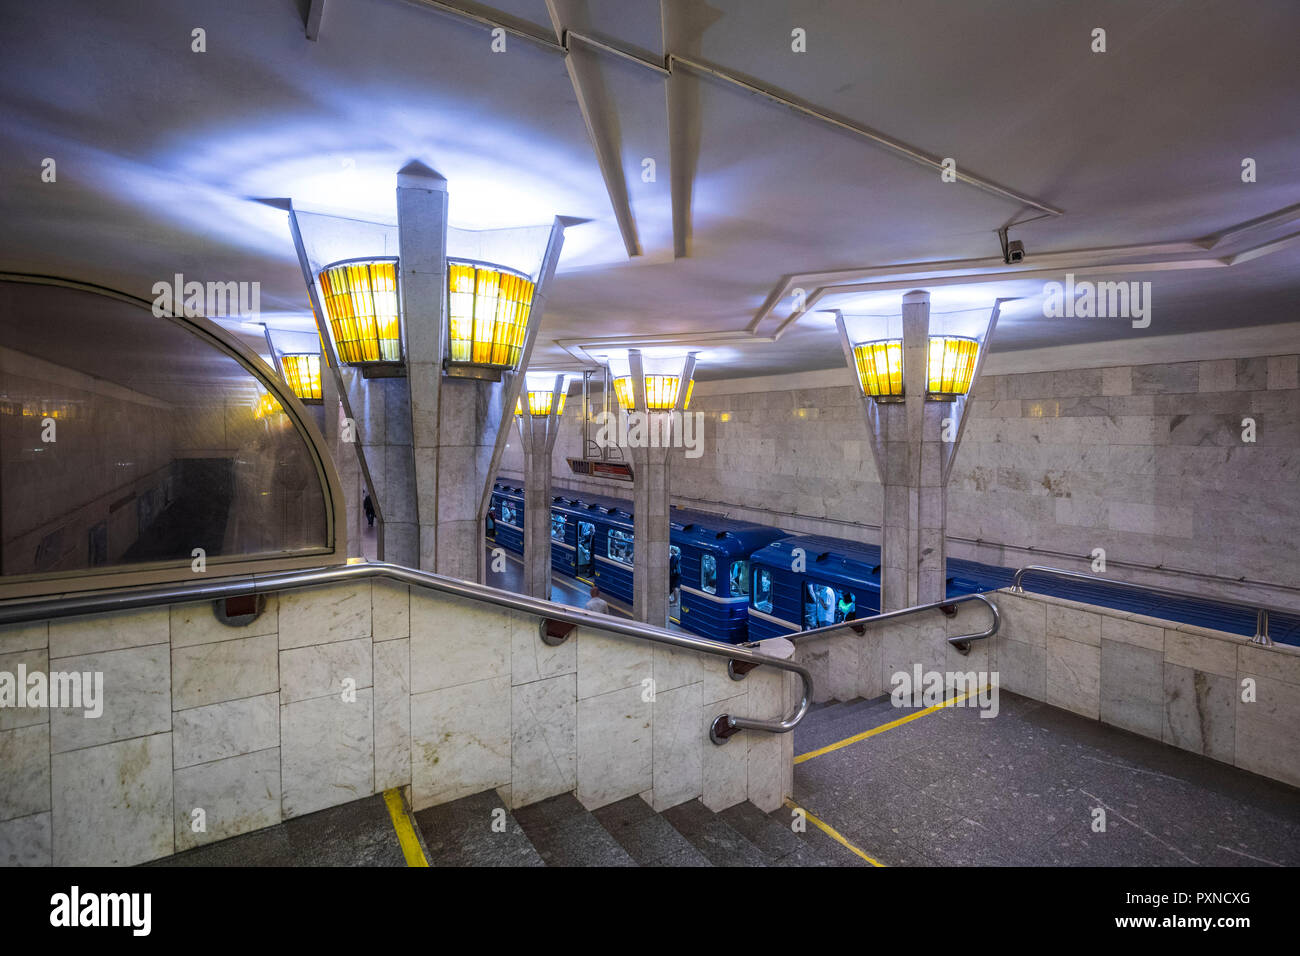 Minsk metro, Minsk, Belarus Stock Photo